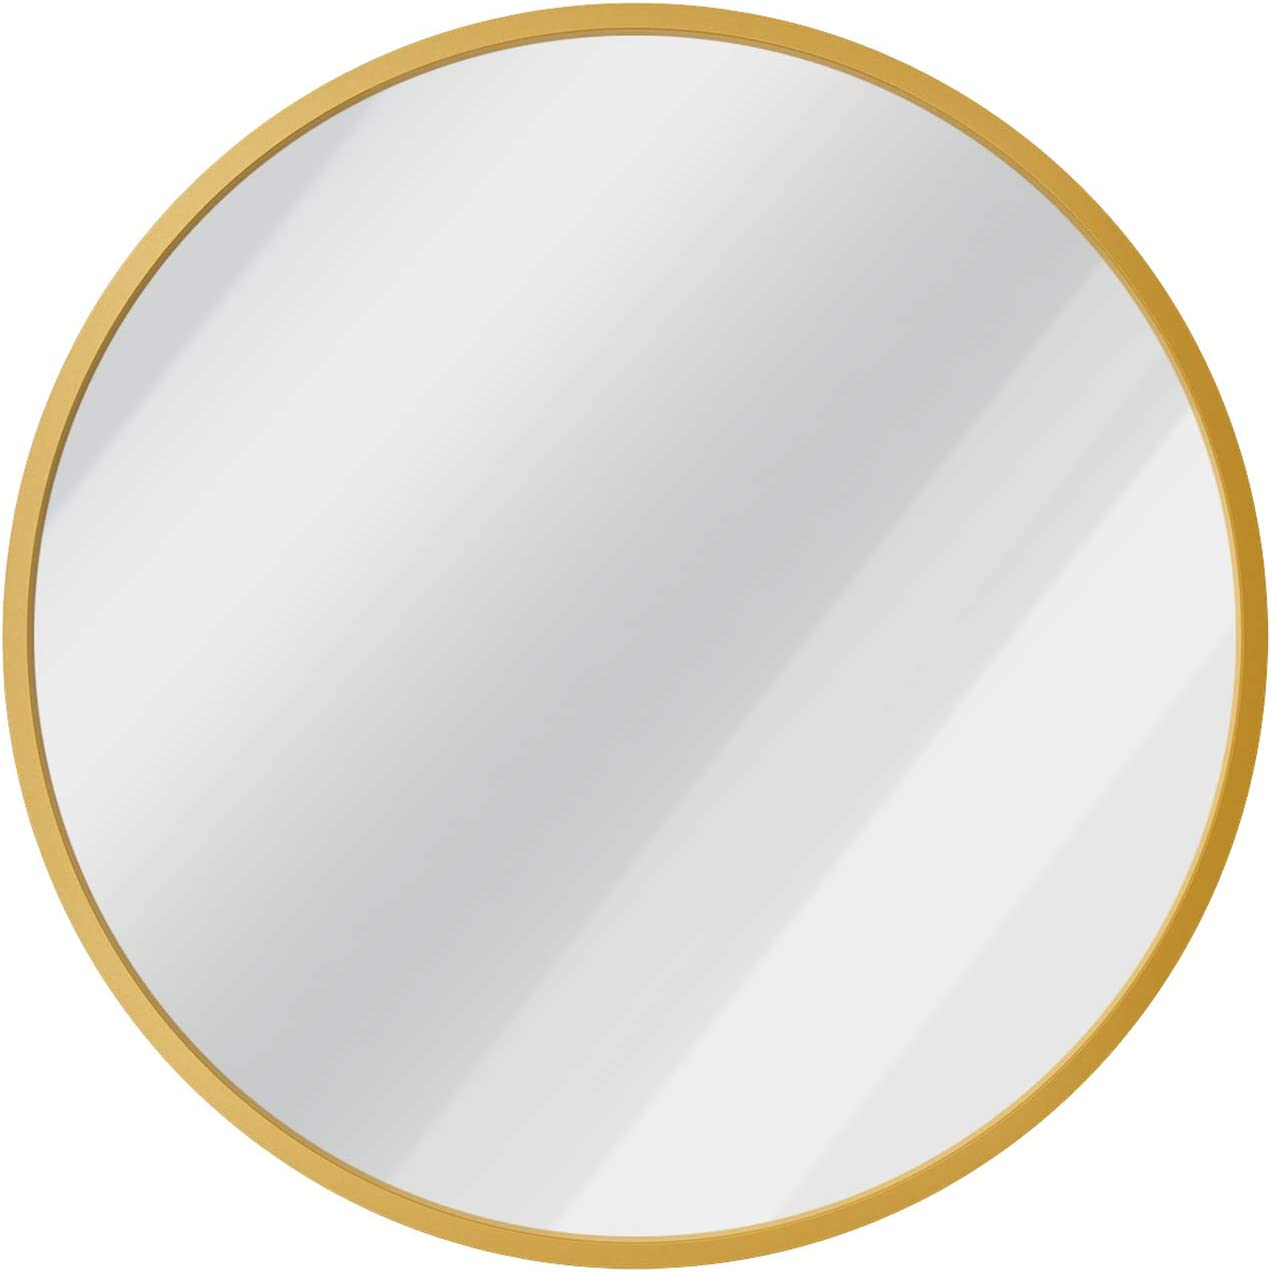 USHOWER 24-Inch Gold Round Wall Mirror, Large Metal Frame Decor Mirror for Bathroom, Entryway, Vanity, and More, Farmhouse & Modern Style